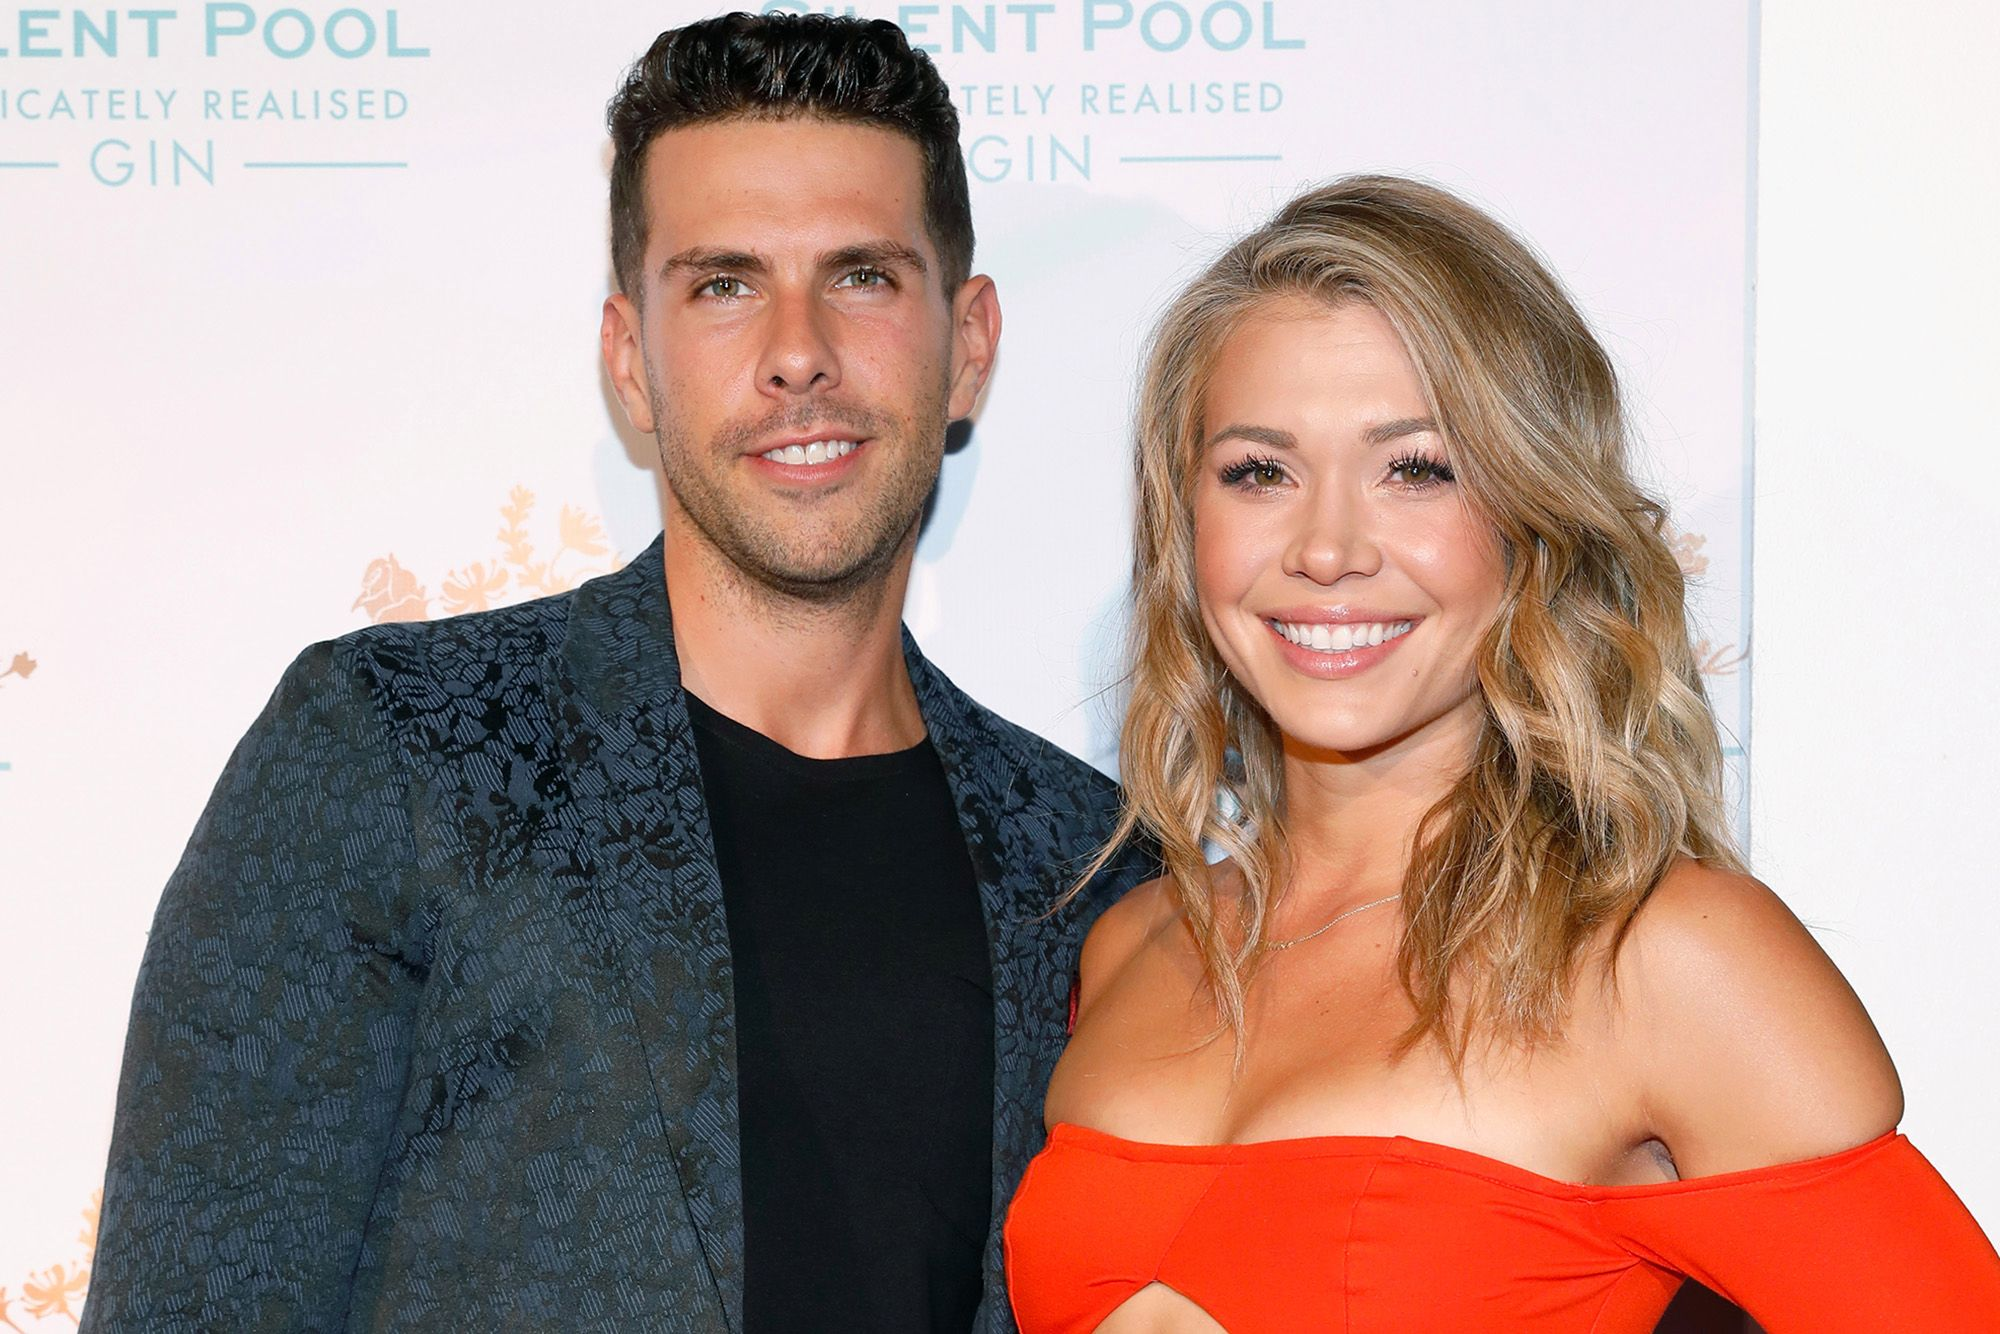 krystal-nielson-and-chris-randone-file-for-divorce-after-painful-split